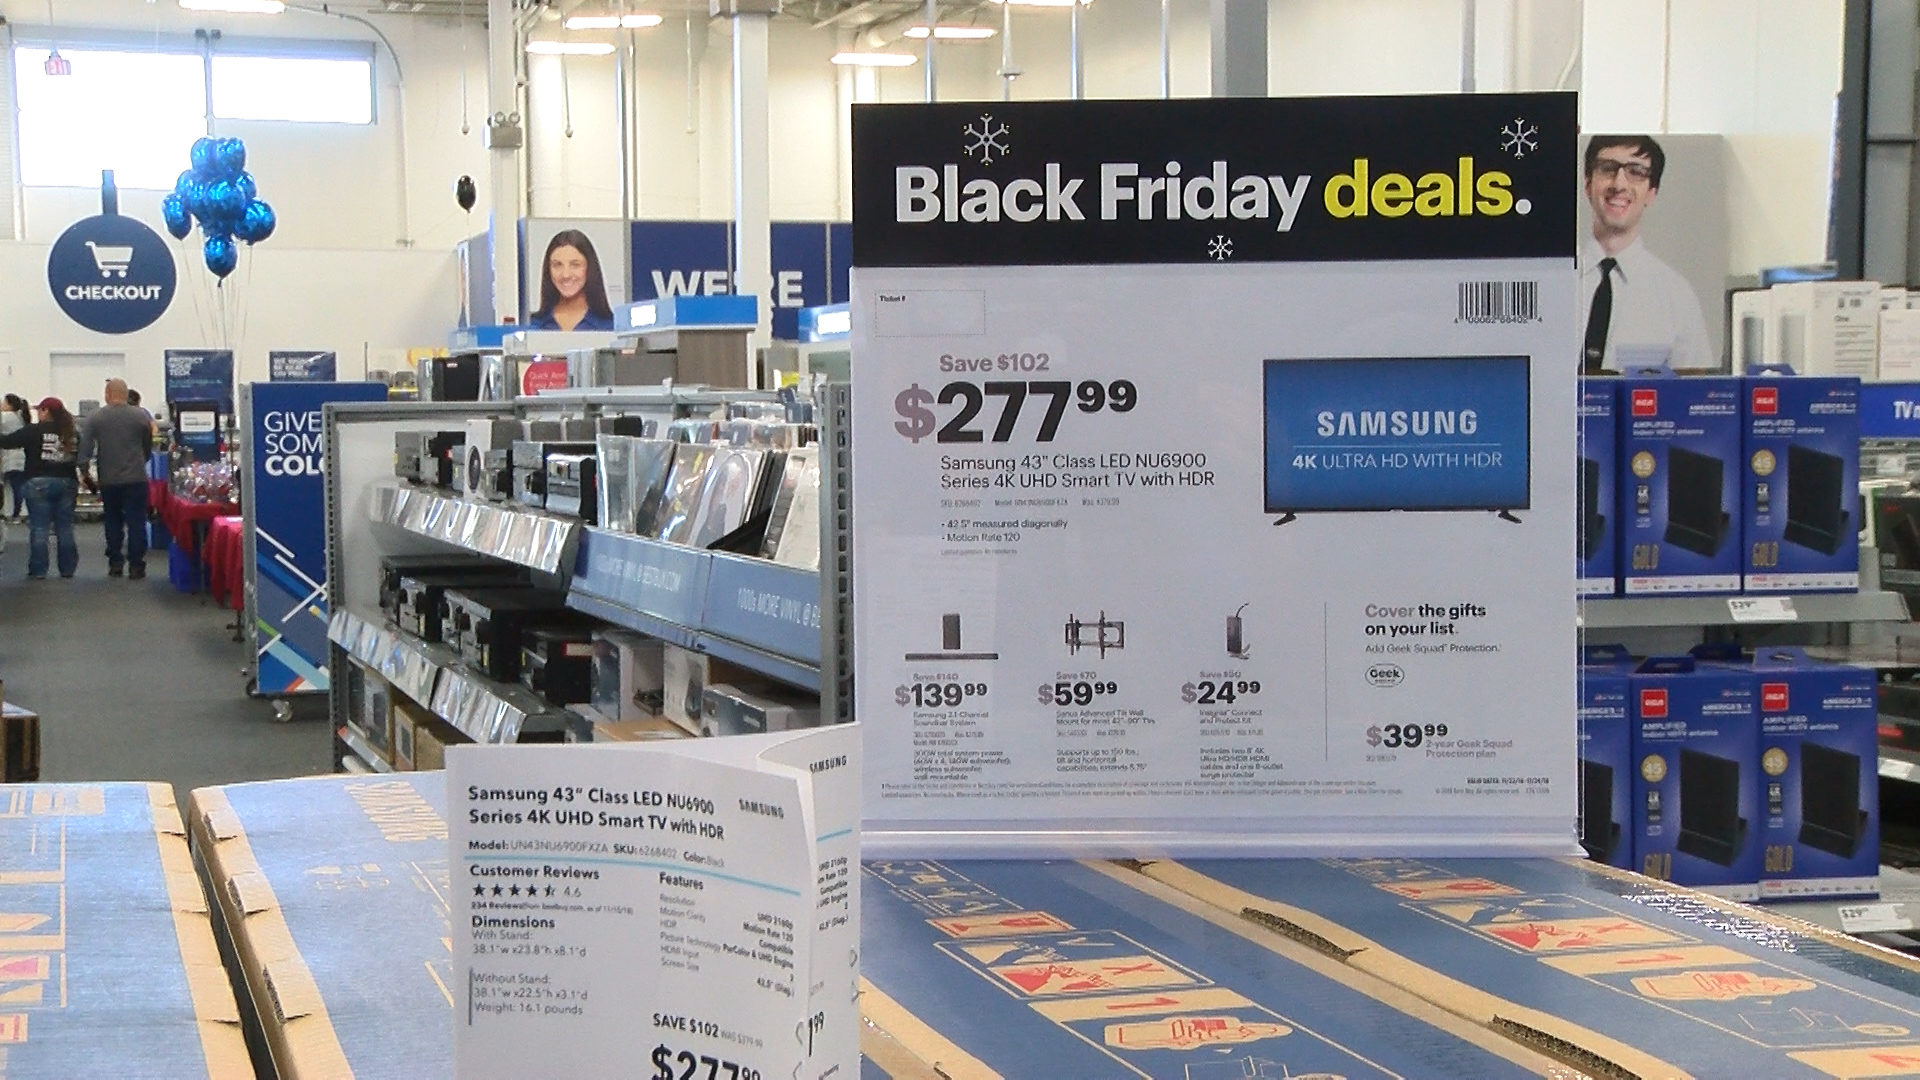 BLACK FRIDAY ELECTRONICS_1543003474101.jpg.jpg